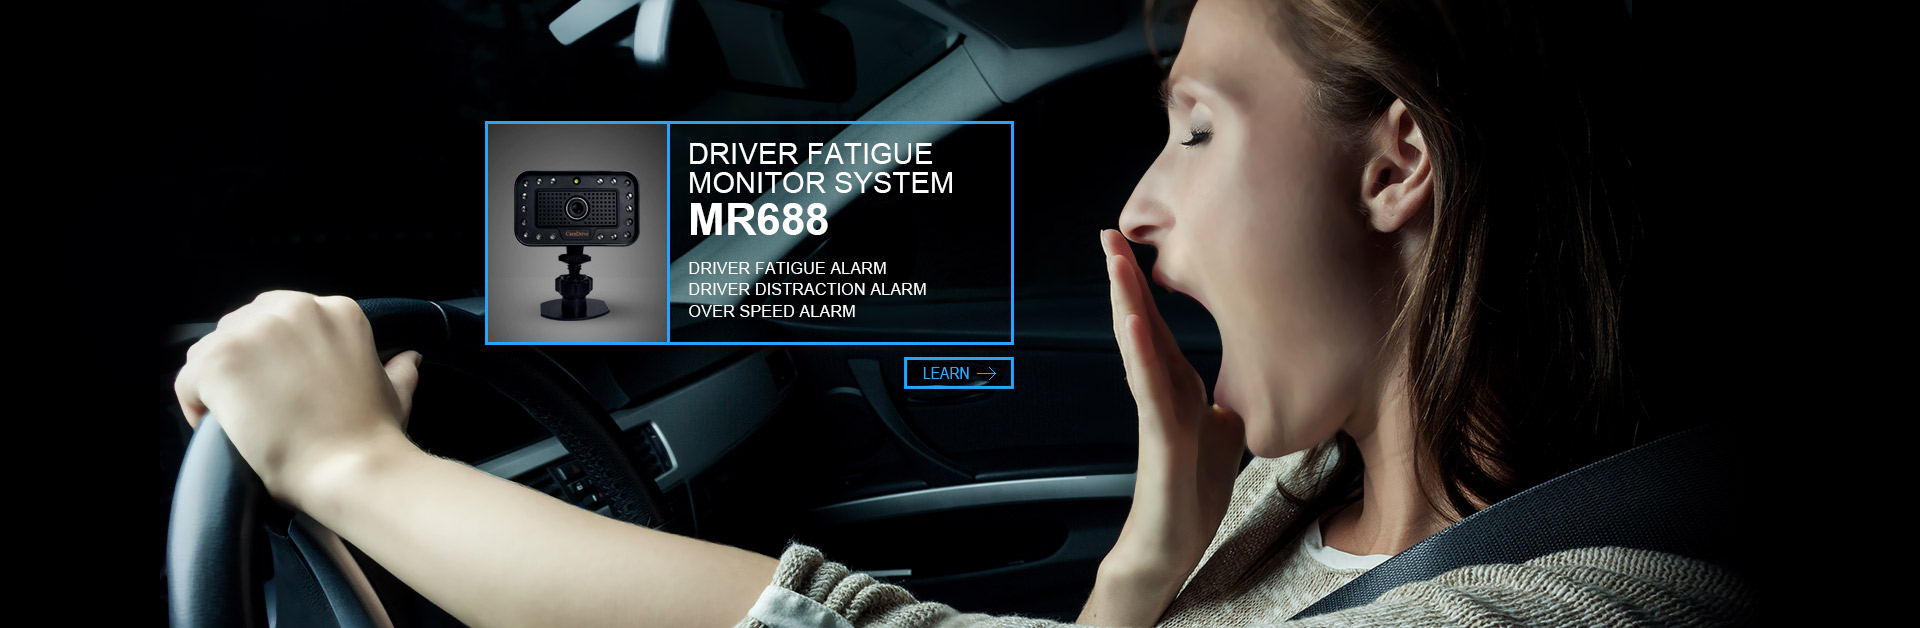 driver fatigue monitor mr688